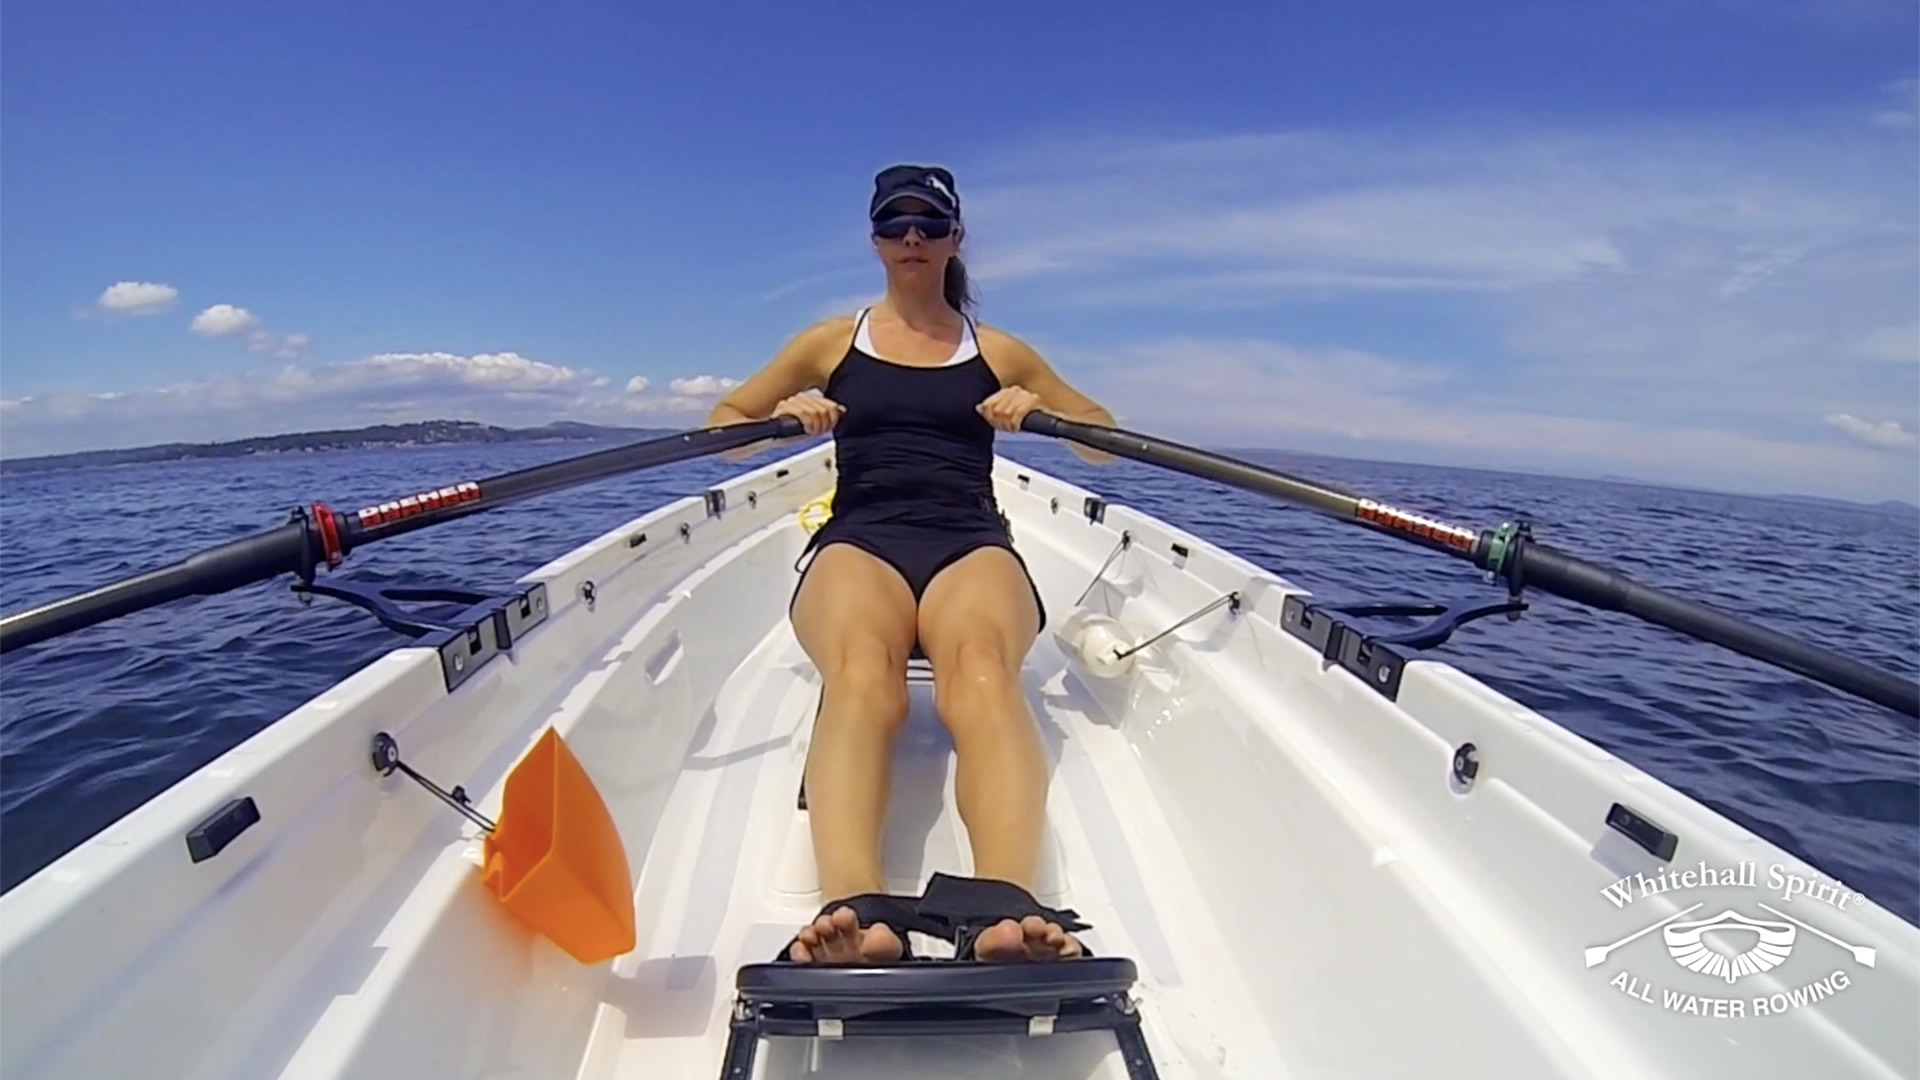 whitehall-rowing-and-sail-all-water-boats-fitness-exercise-athletes-training-running